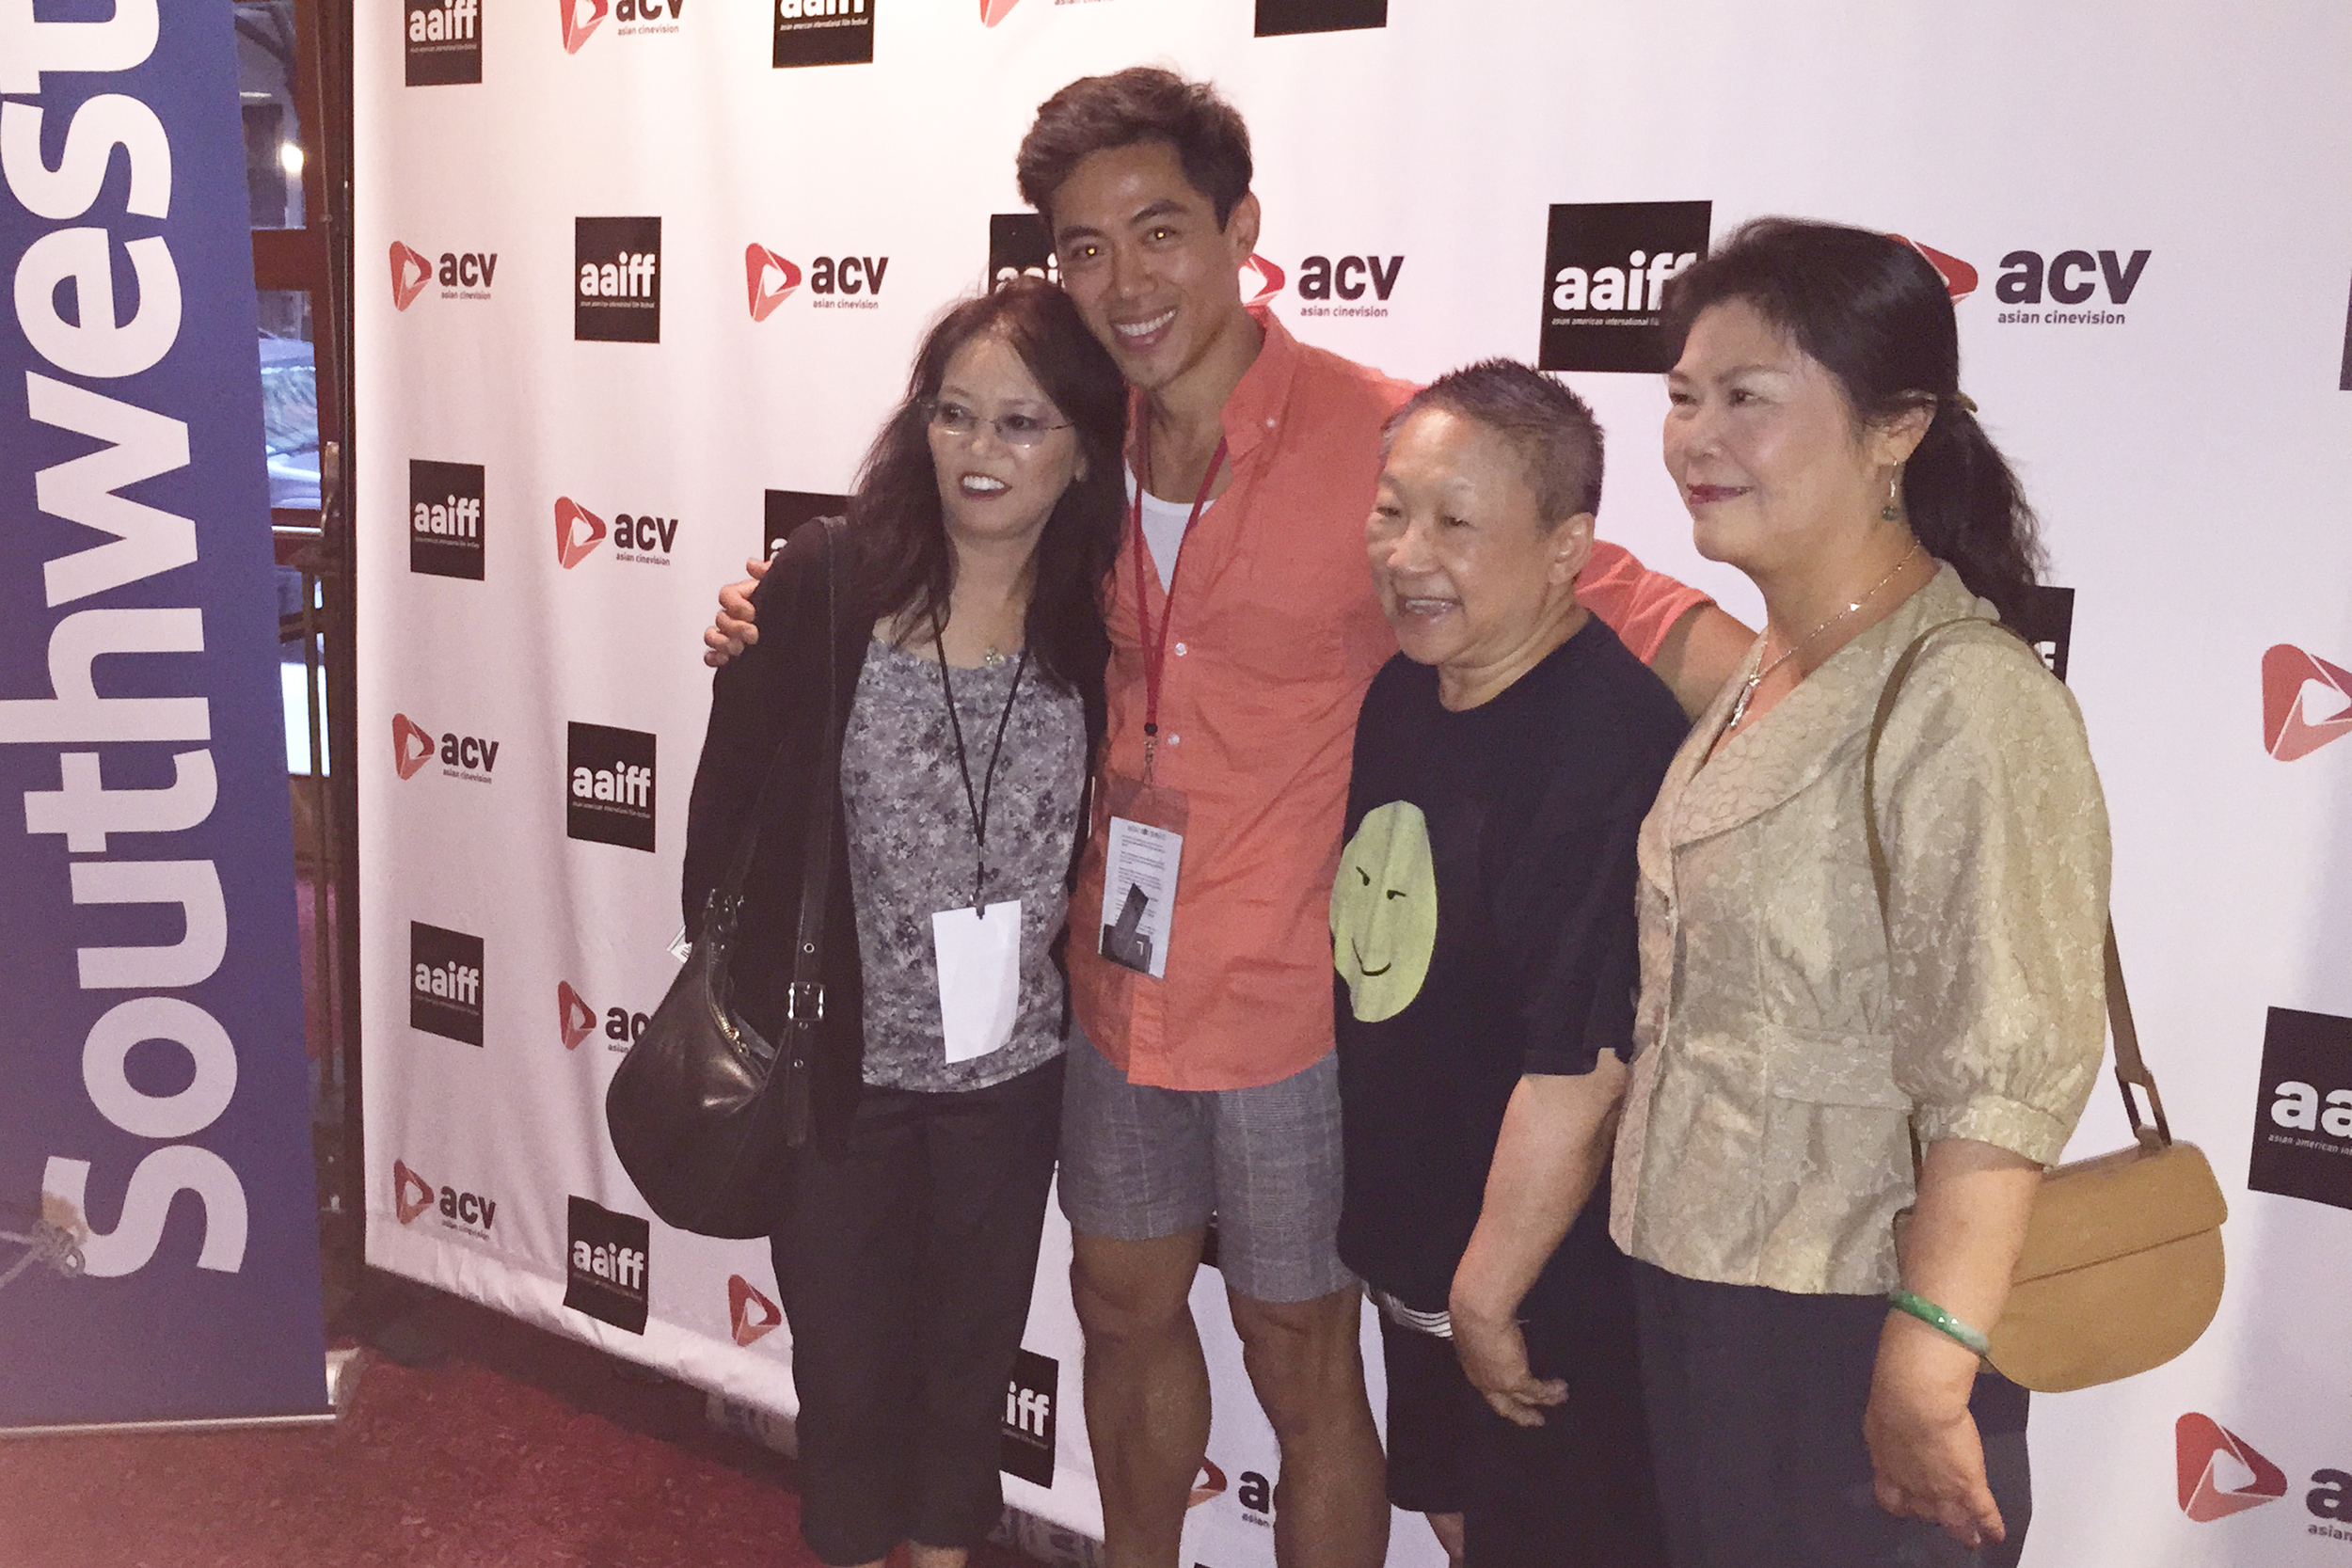 Actress Nancy Eng, director Leon Le, actress Lori Tan Chin and actress Min-Wen Huang at the Asian American International Film Festival screening in New York City, 07/25/2015.